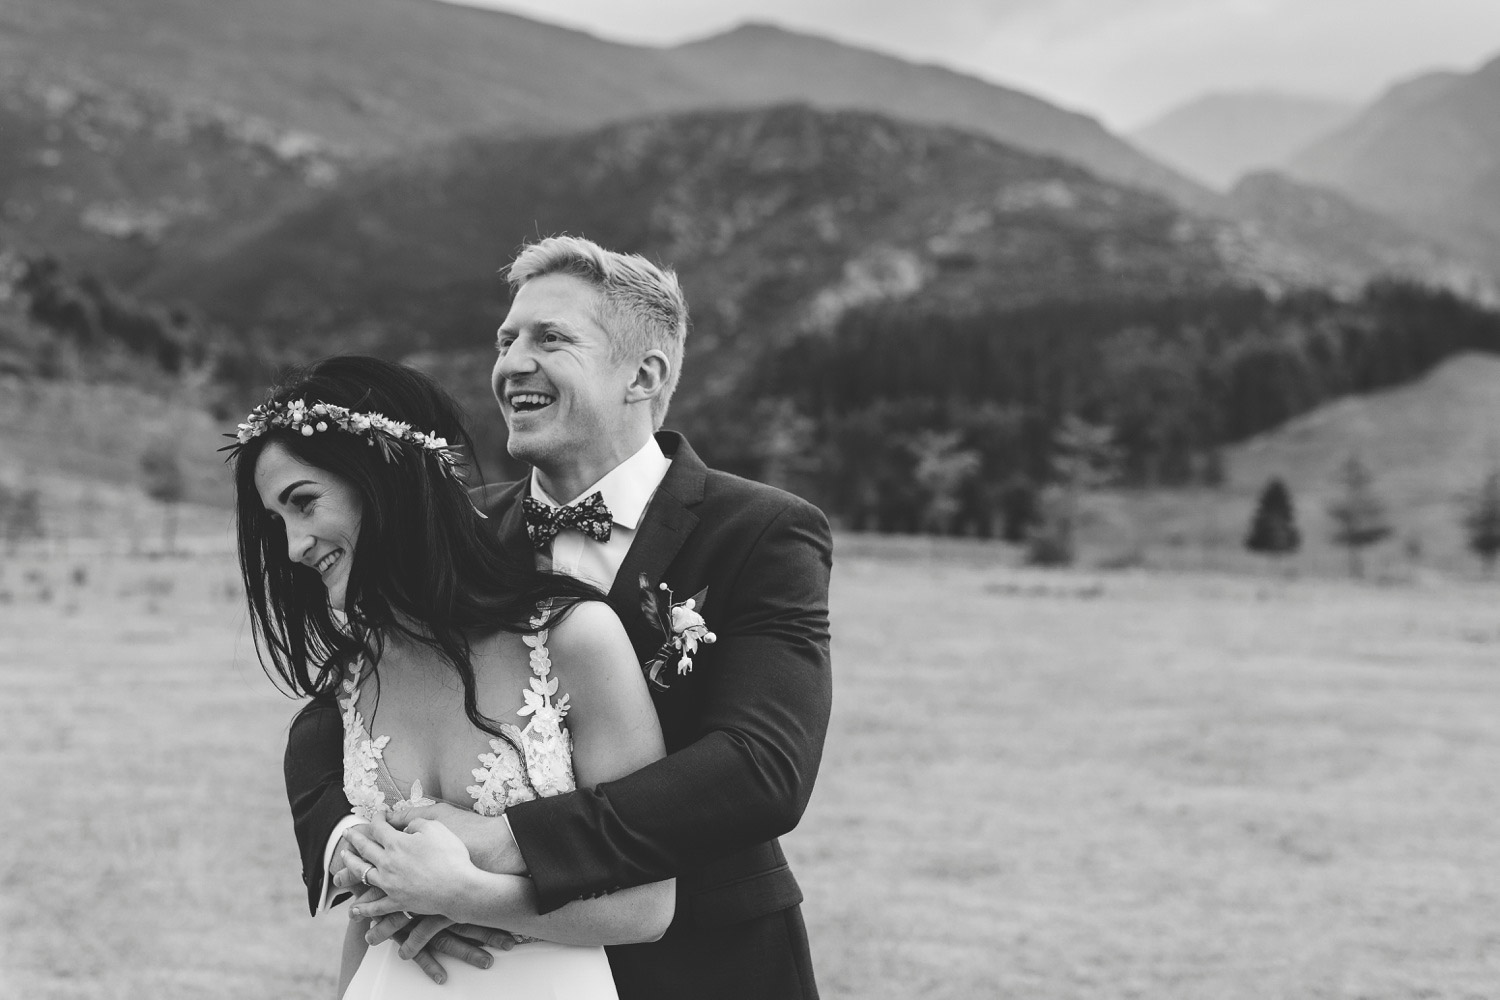 western-cape-photoghers-gen-scott-greyton-wedding-photography-charlie-ray103.jpg